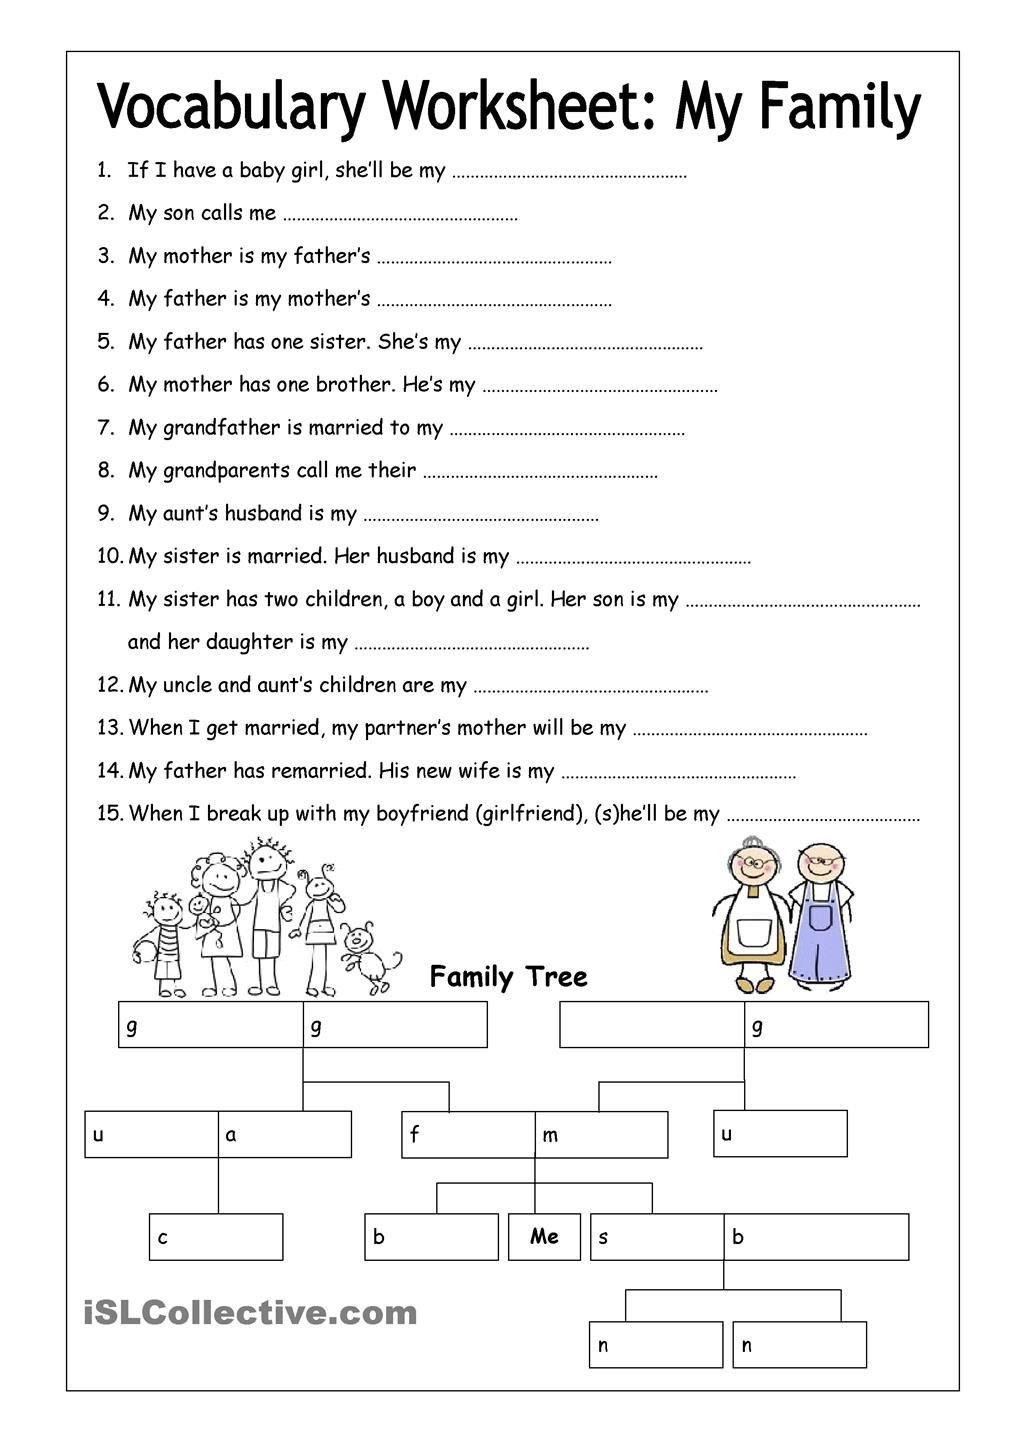 4th Grade Vocabulary Worksheets Pdf Vocabulary Worksheet My Family Medium Hojas Trabajo English